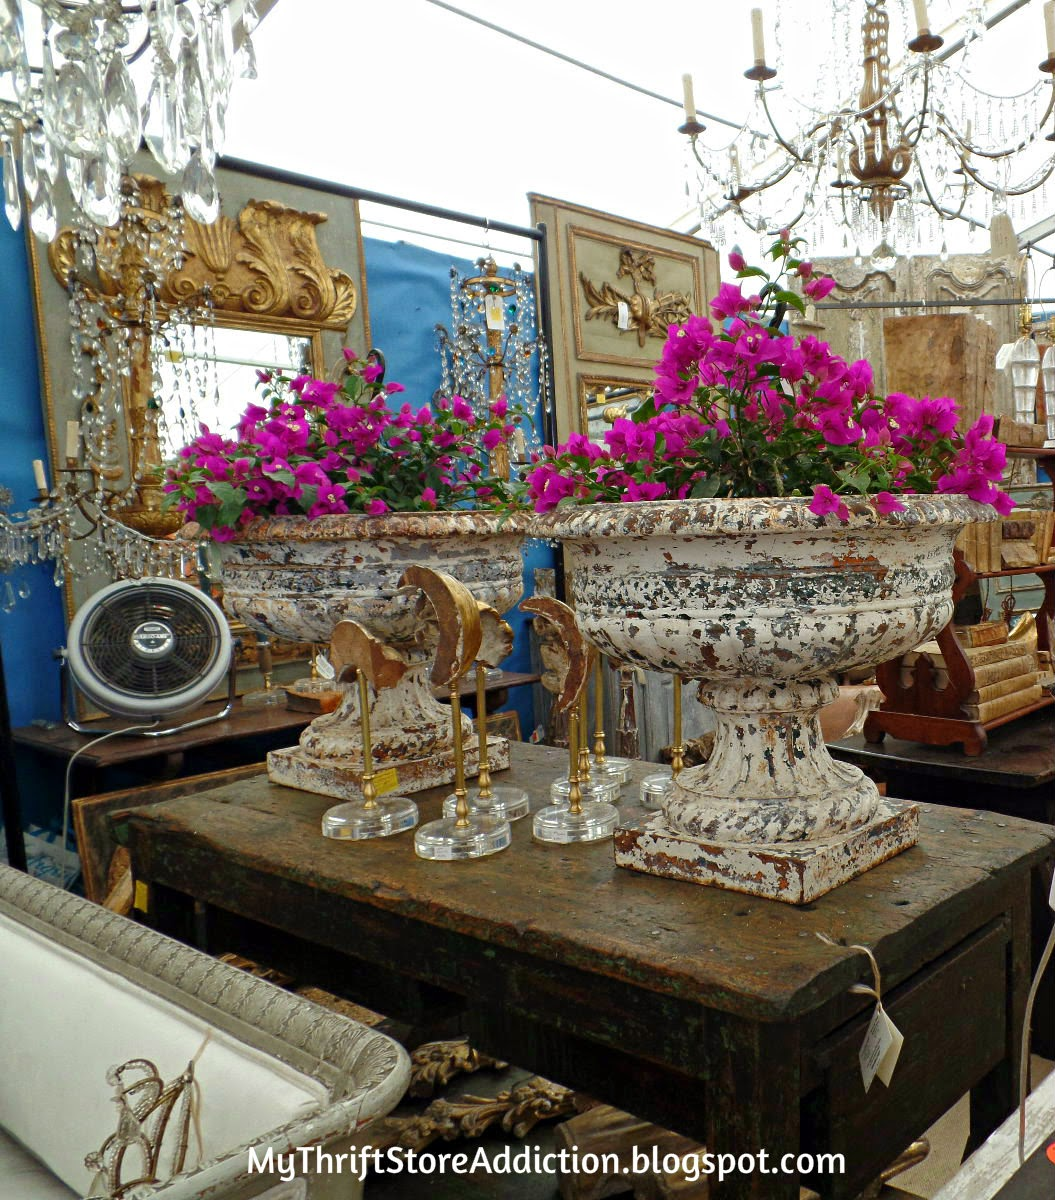 Gorgeous urns and chandeliers